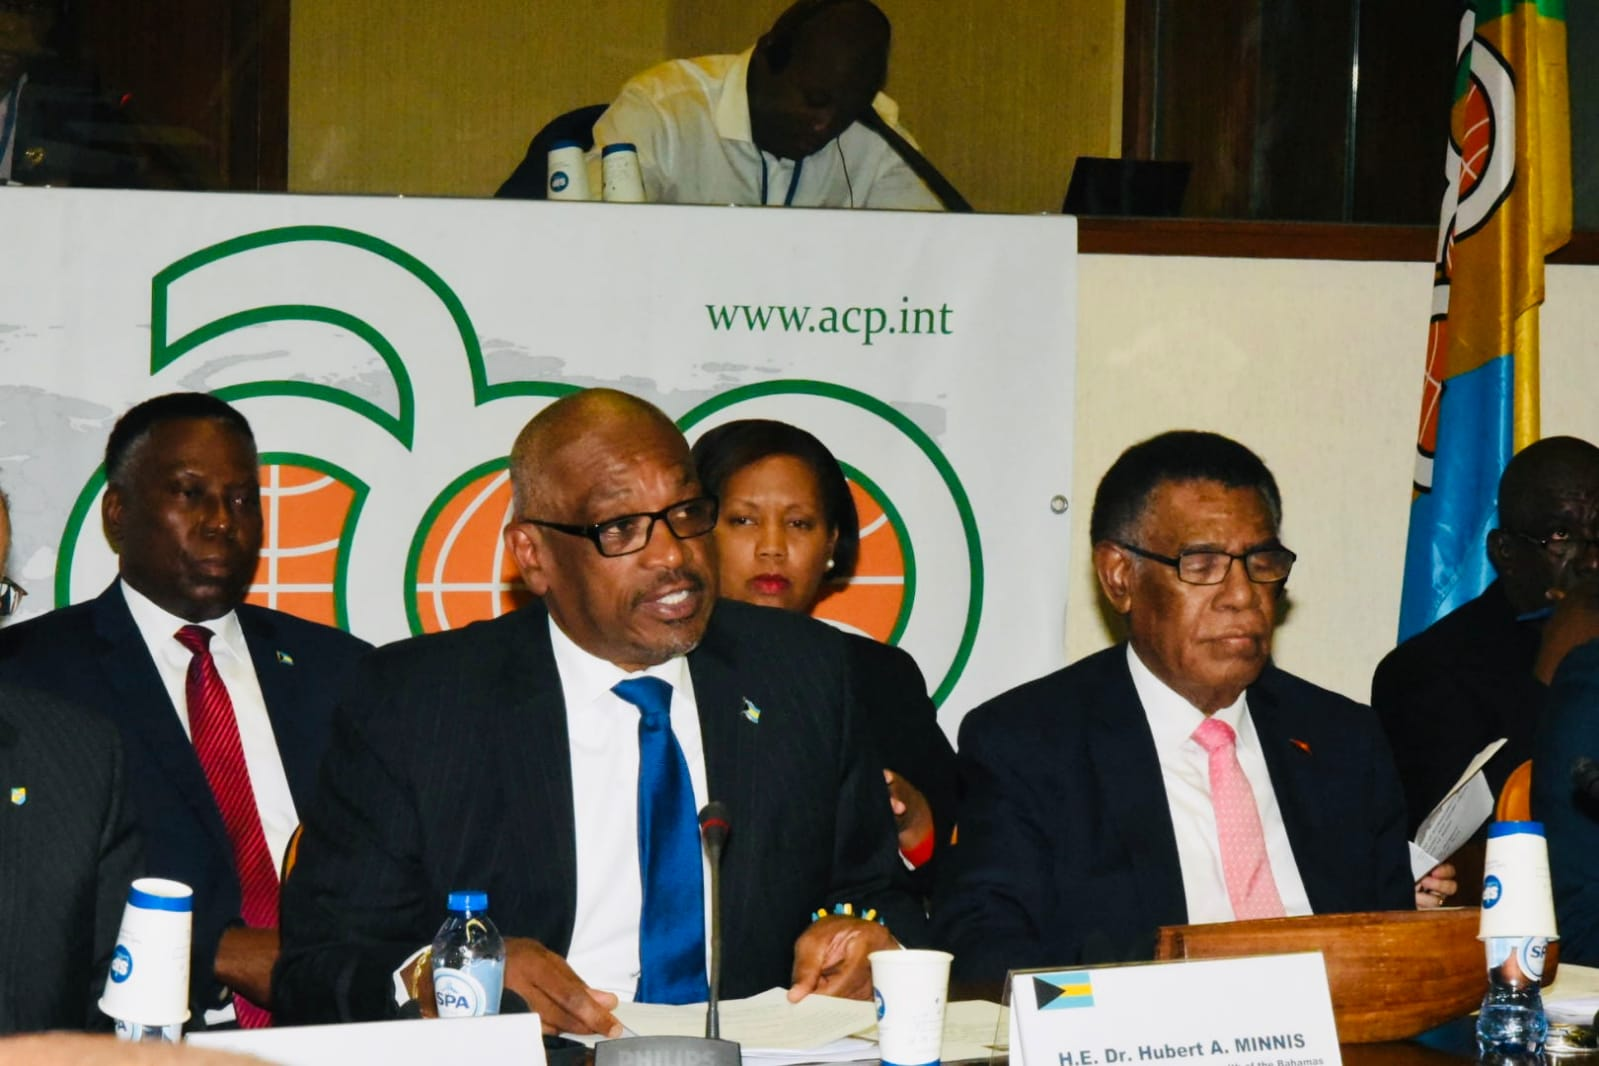 PM Minnis urges ACP countries to intensify response to climate emergency